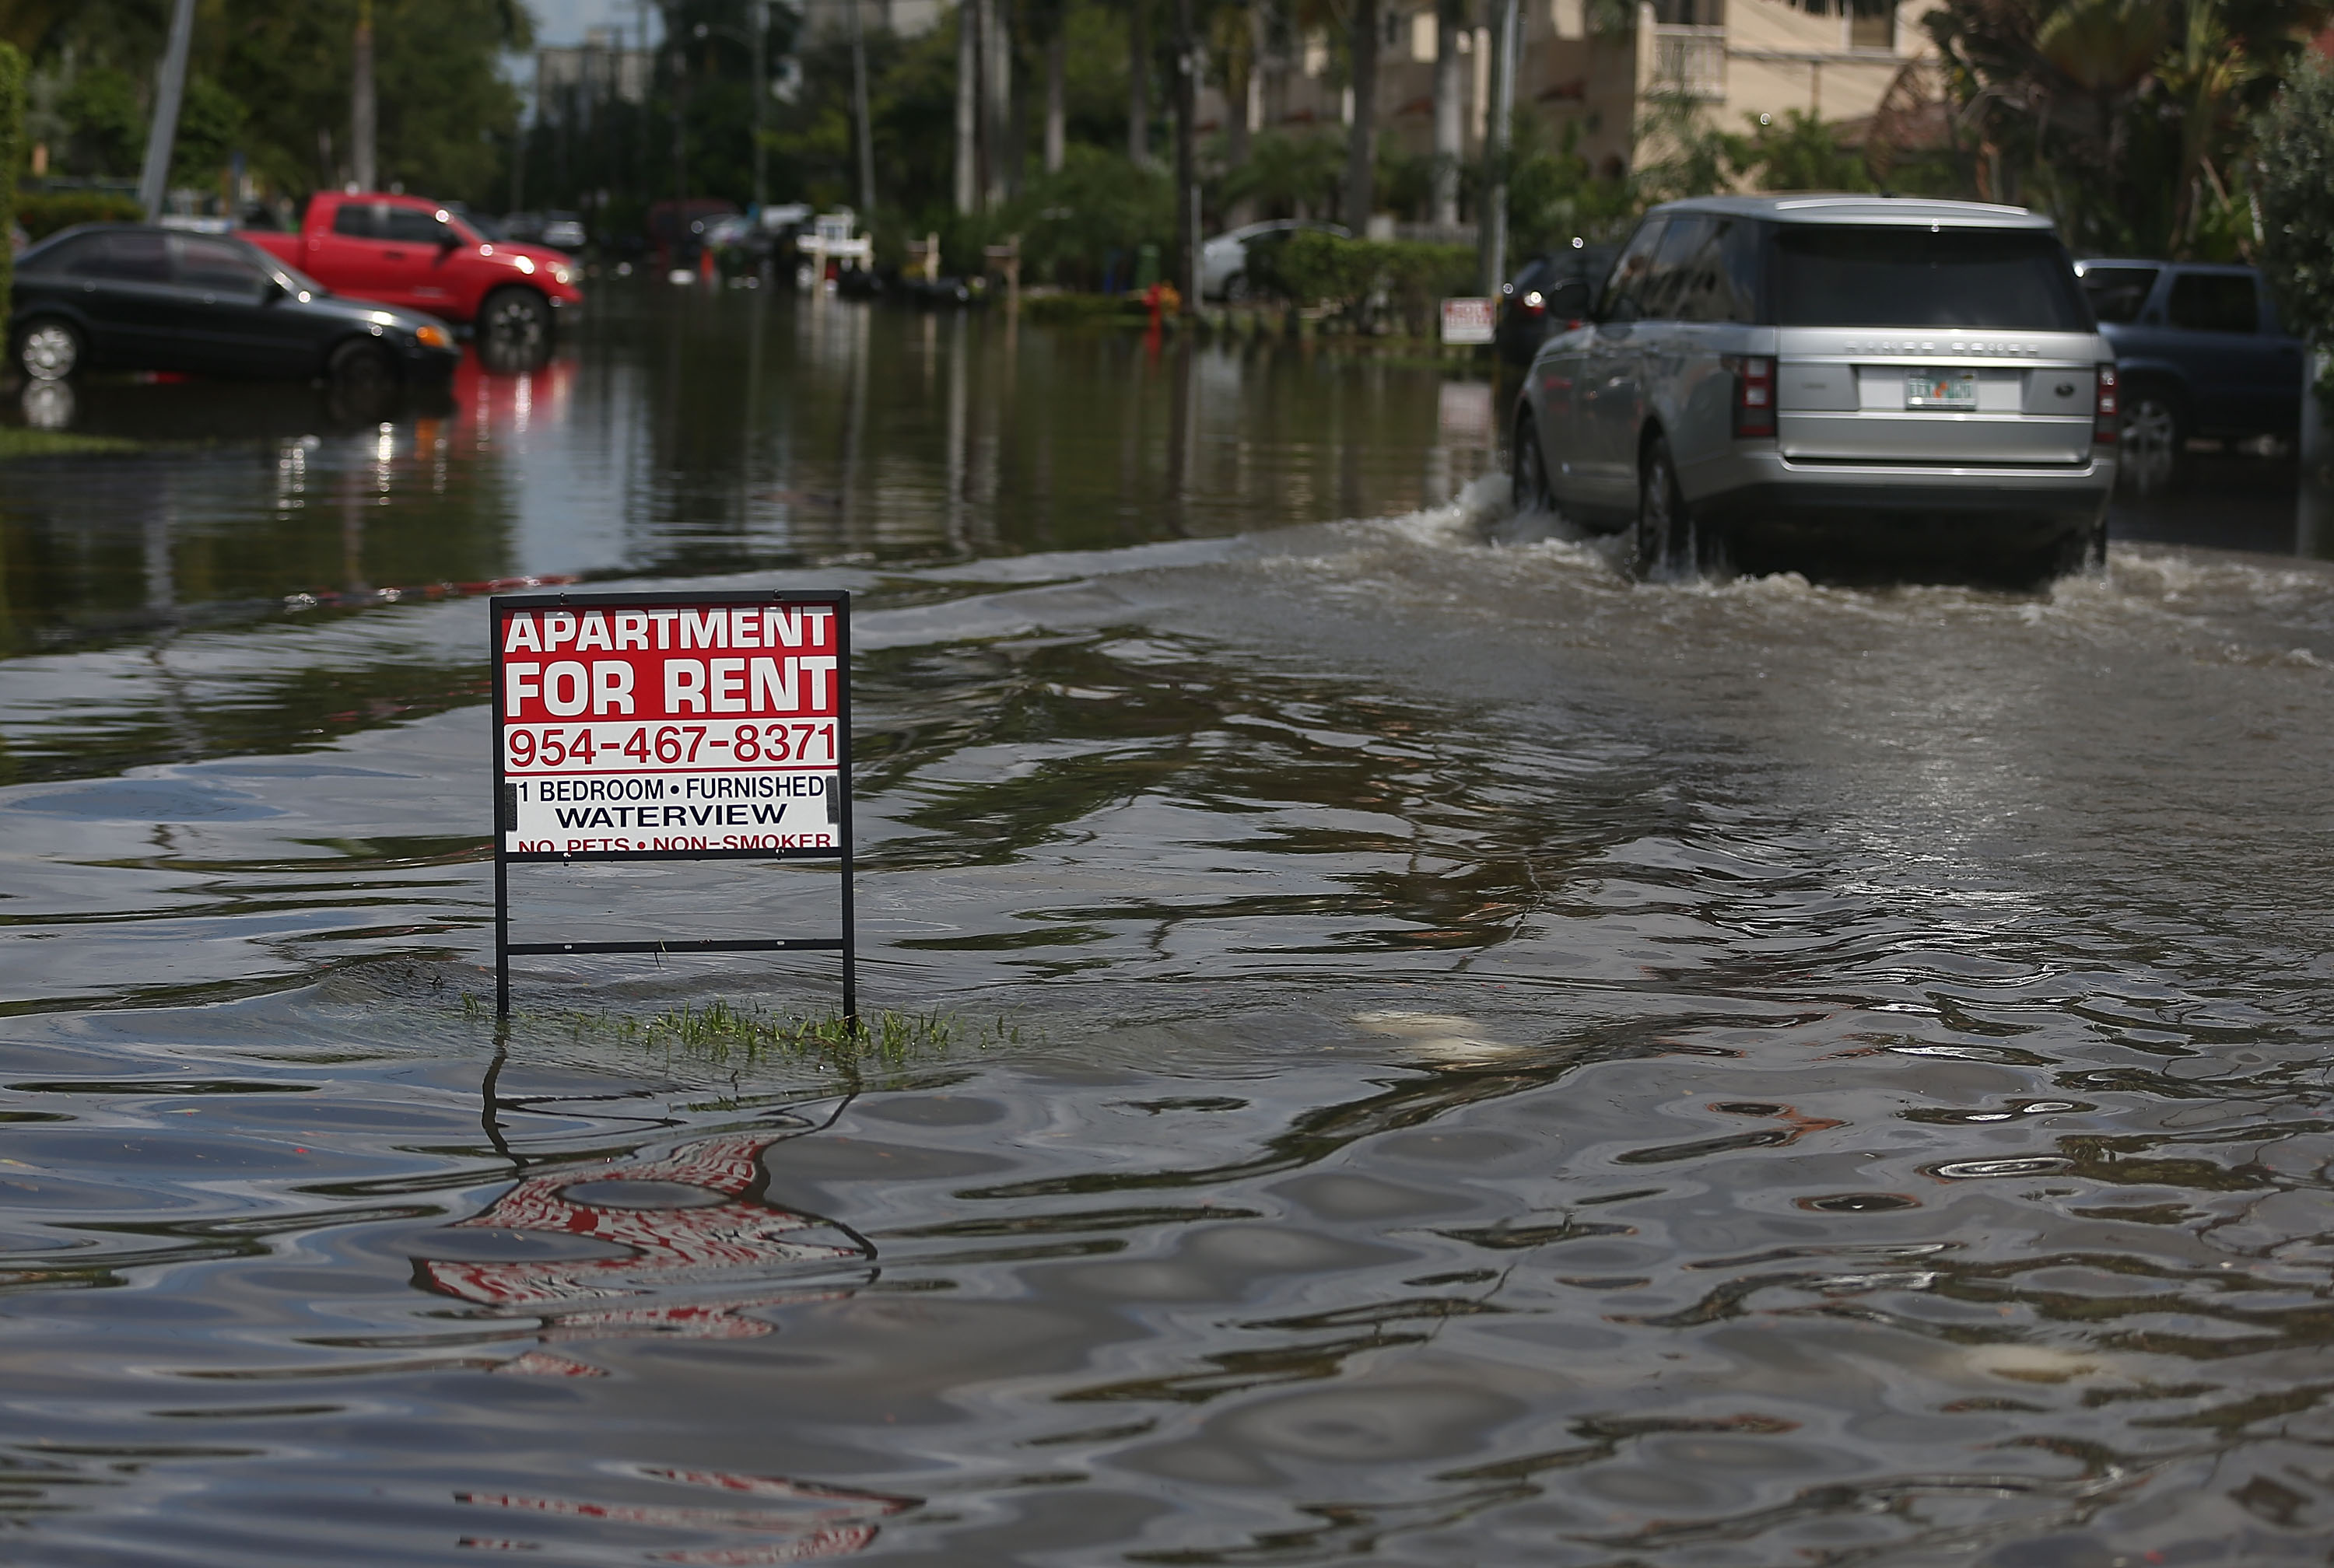 An apartment for rent sign is seen in a flooded street caused by the combination of the lunar orbit which caused seasonal high tides and what many believe is the rising sea levels due to climate change on Sept. 30, 2015 in Fort Lauderdale, Fla.